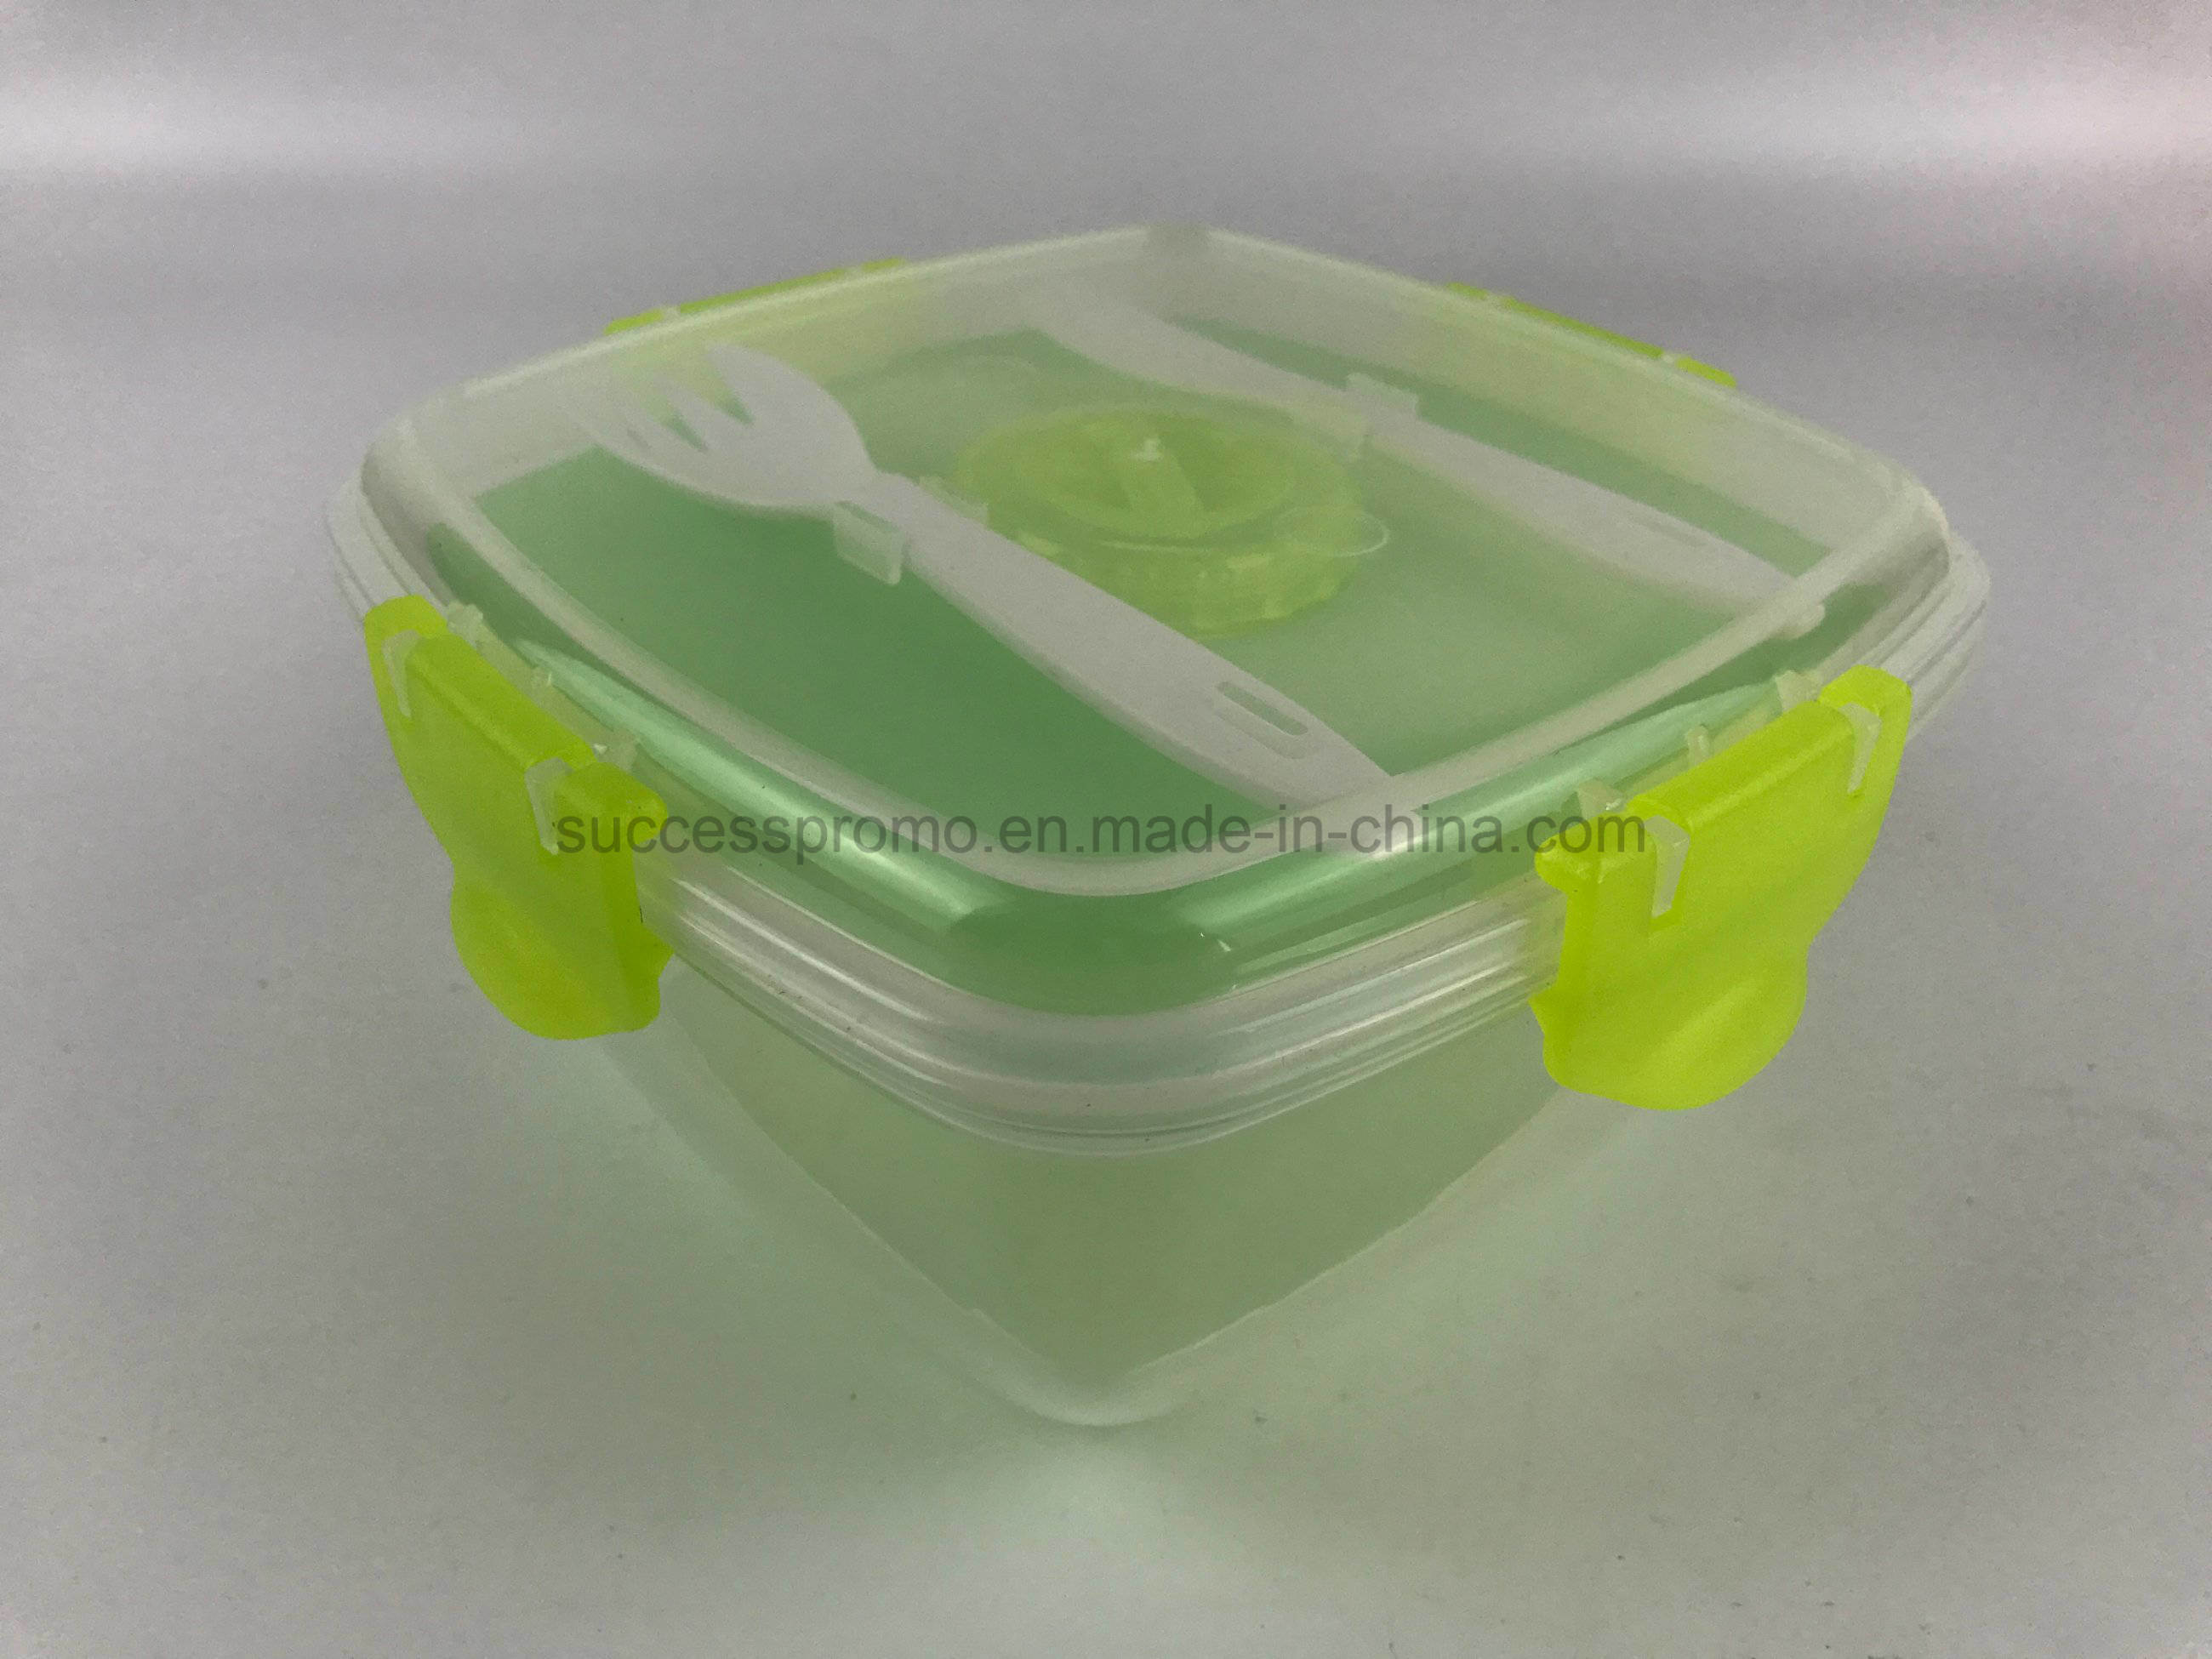 Hot Item Food Container Plastic Microwave Bento Box Cool Lunch